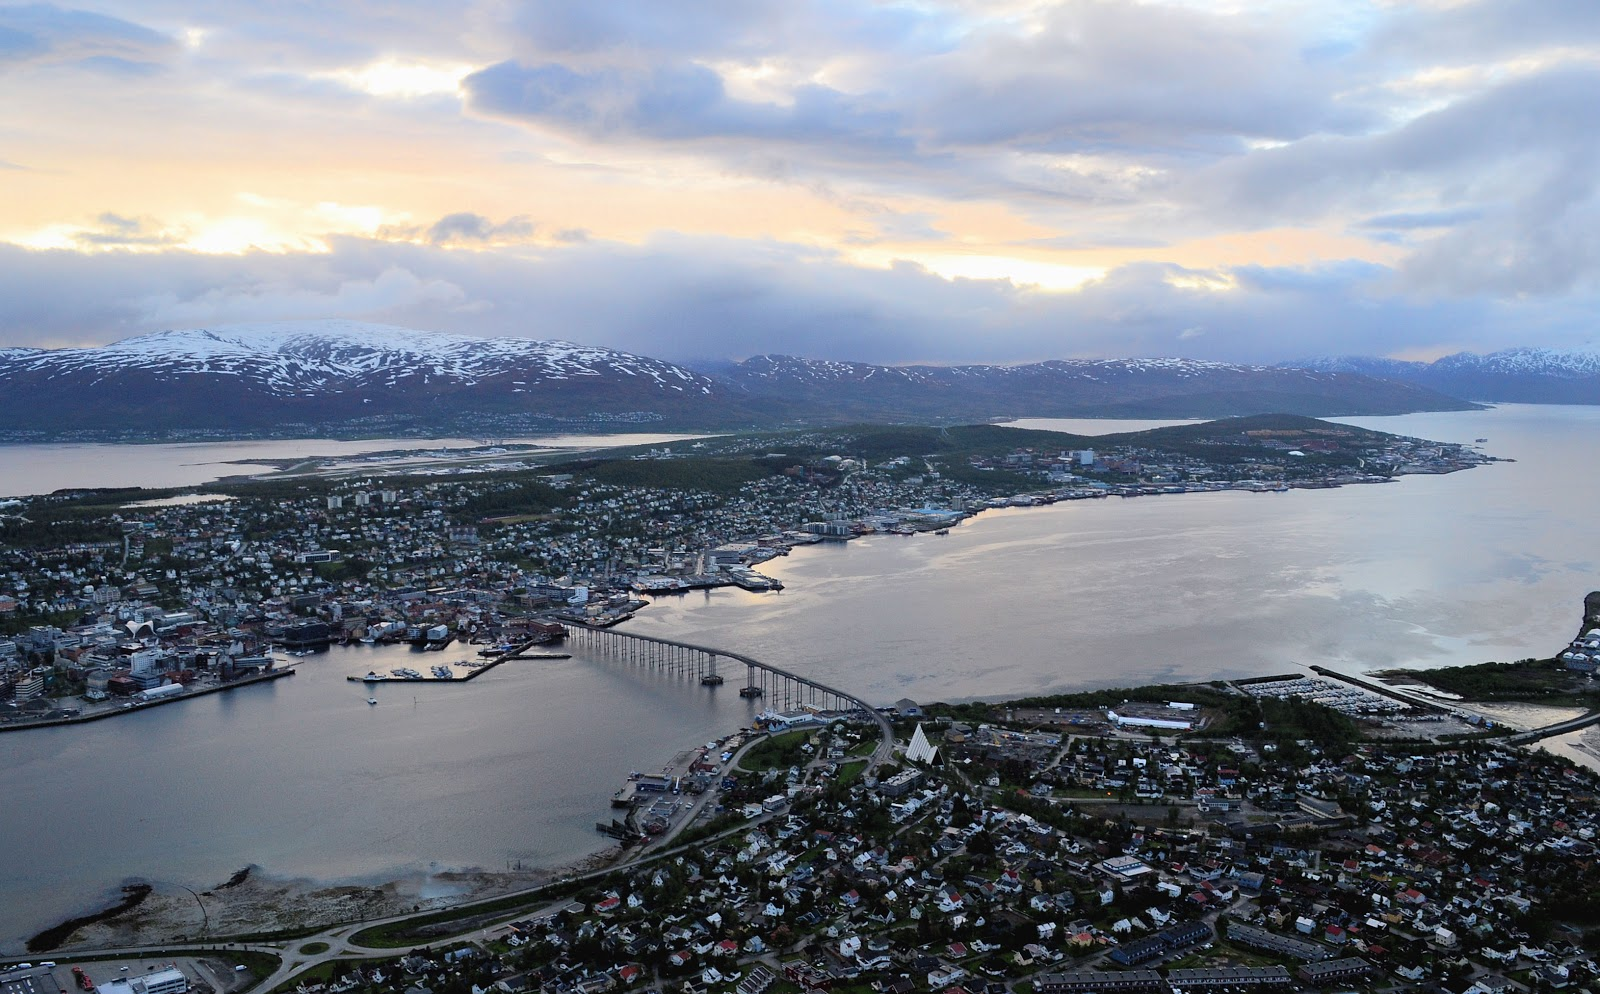 Tromsø Sound and city as seen from high atop the mountain ledge of Storsteinen.